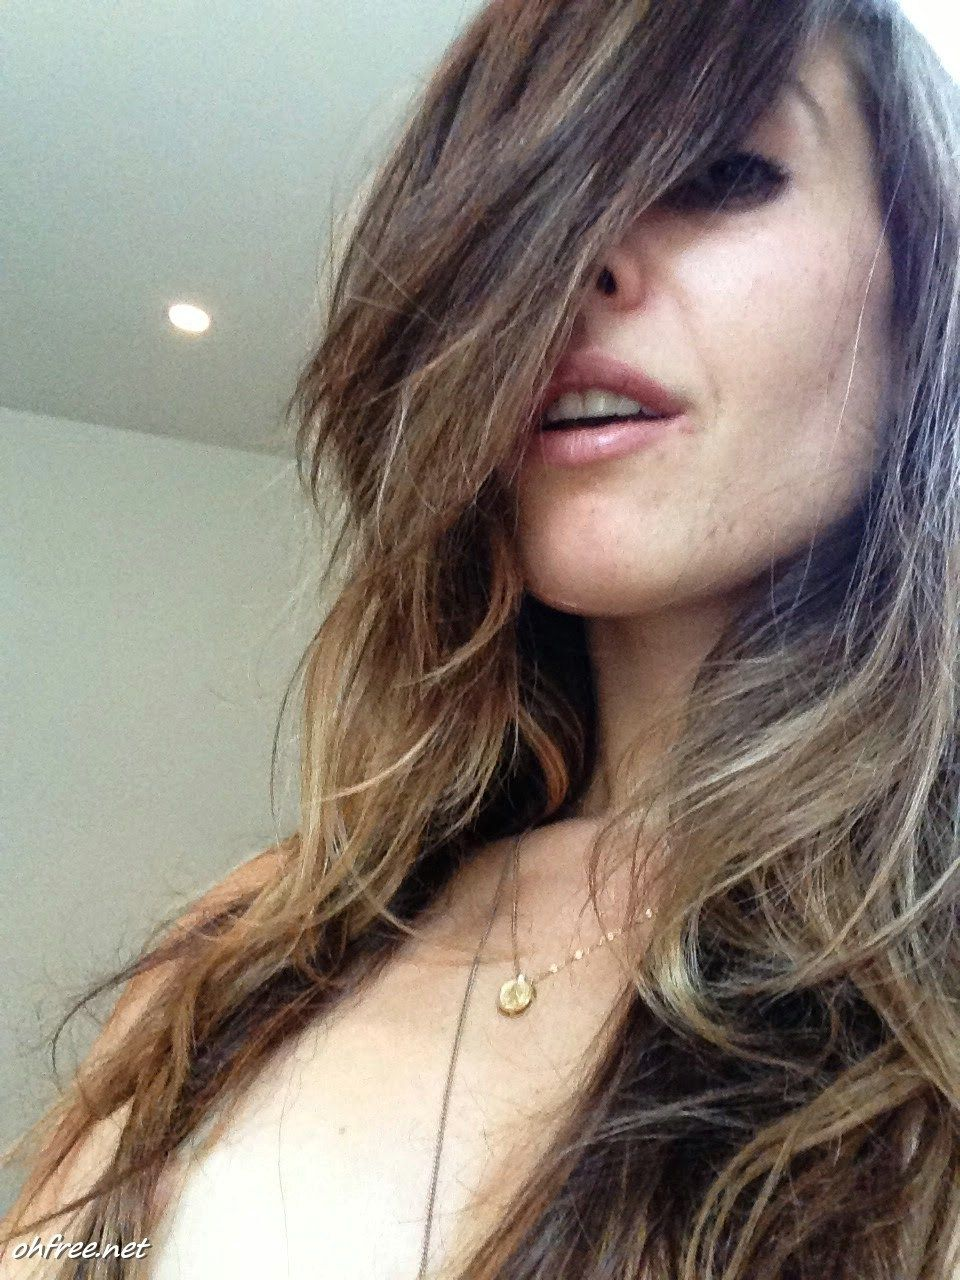 Topless Video Carly Pope naked photo 2017